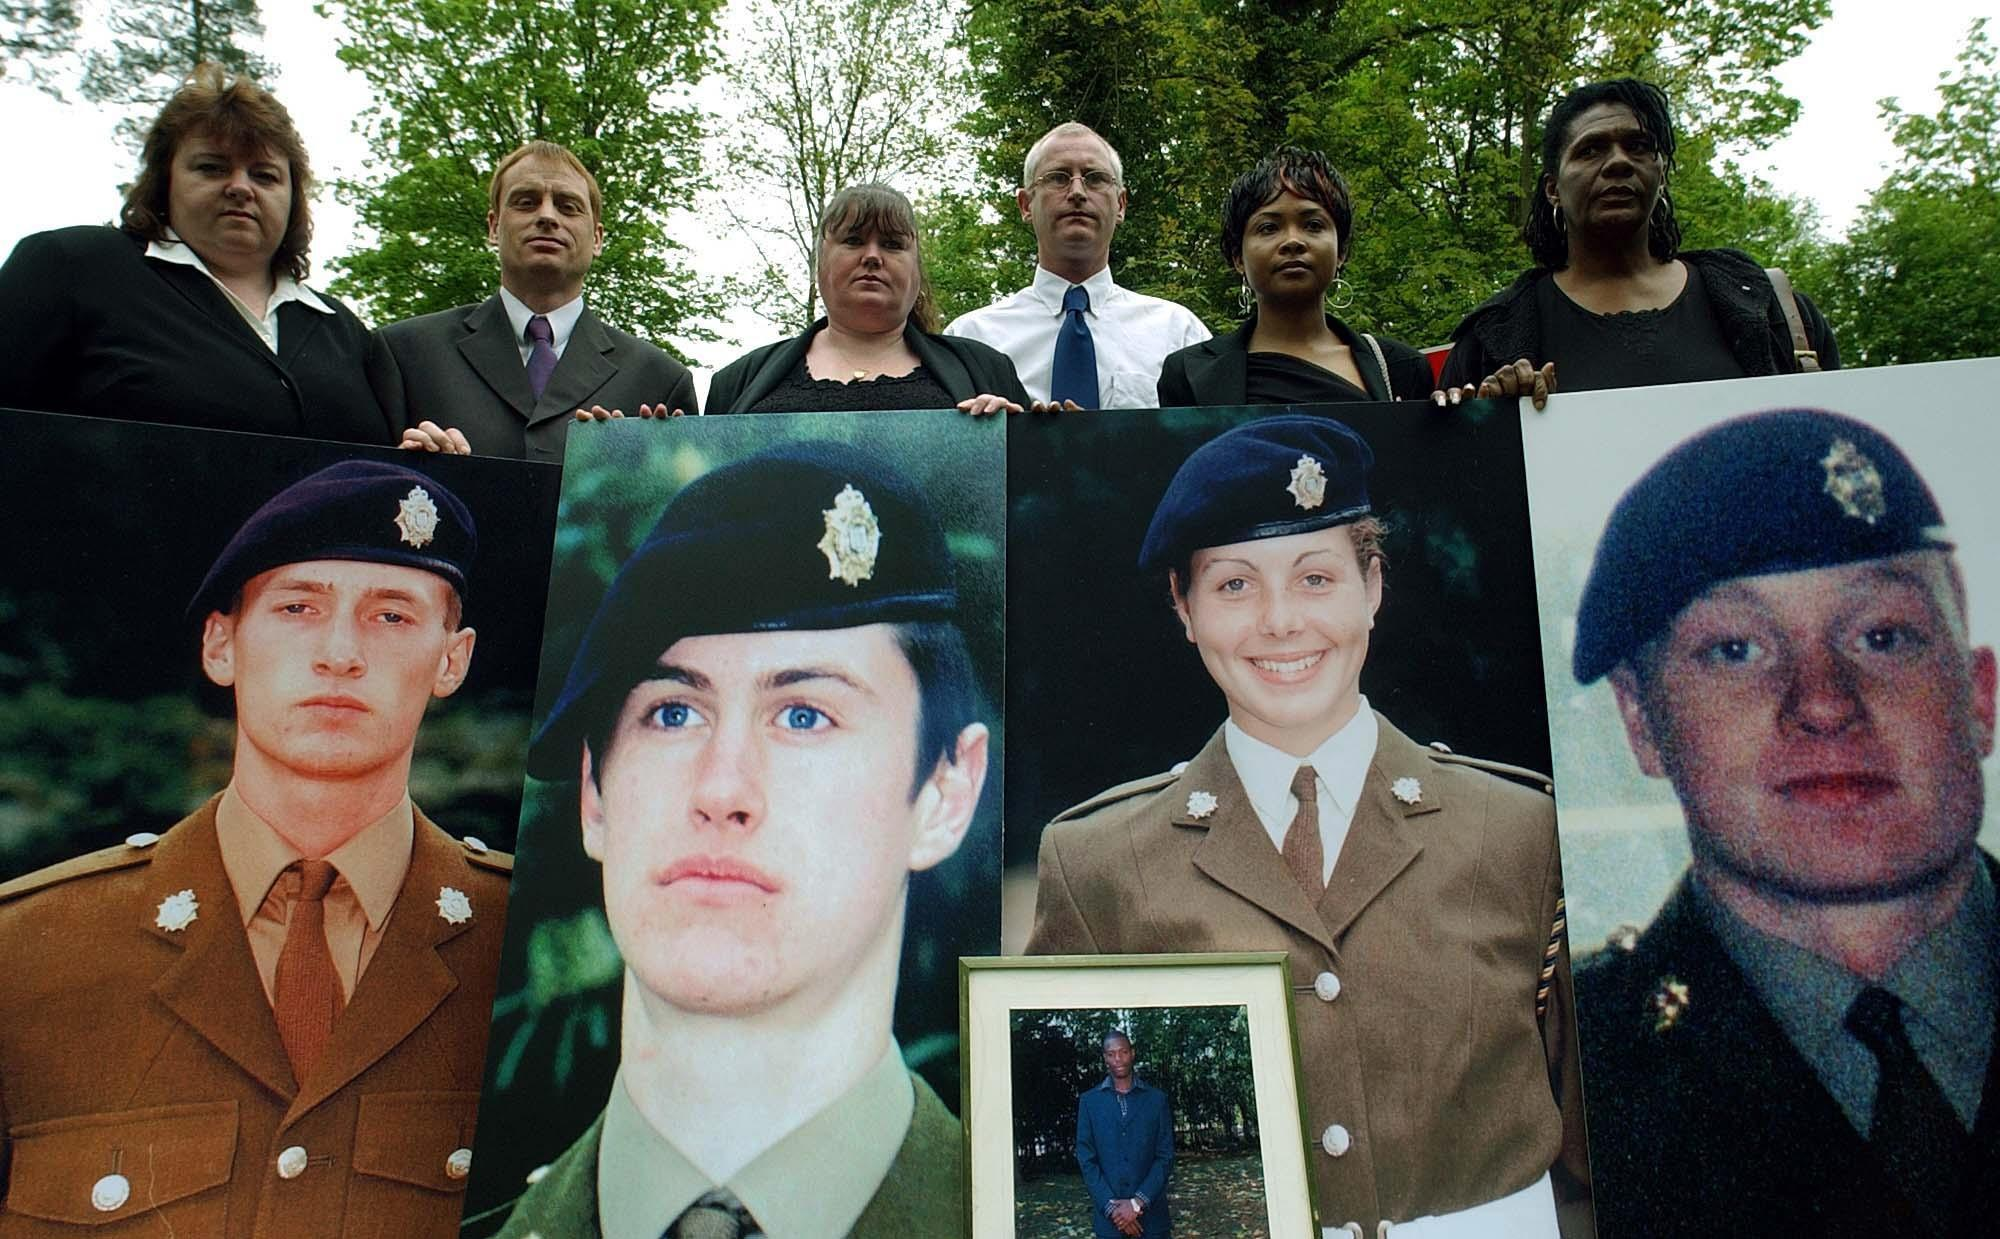 Yvonne Heath (formerly Collinson), Jim Collinson, Diane Gray, Geoff Gray, Deveen Clarke and Glasme Davis hold picture boards of soldiers who died while serving at Deepcut Barracks.